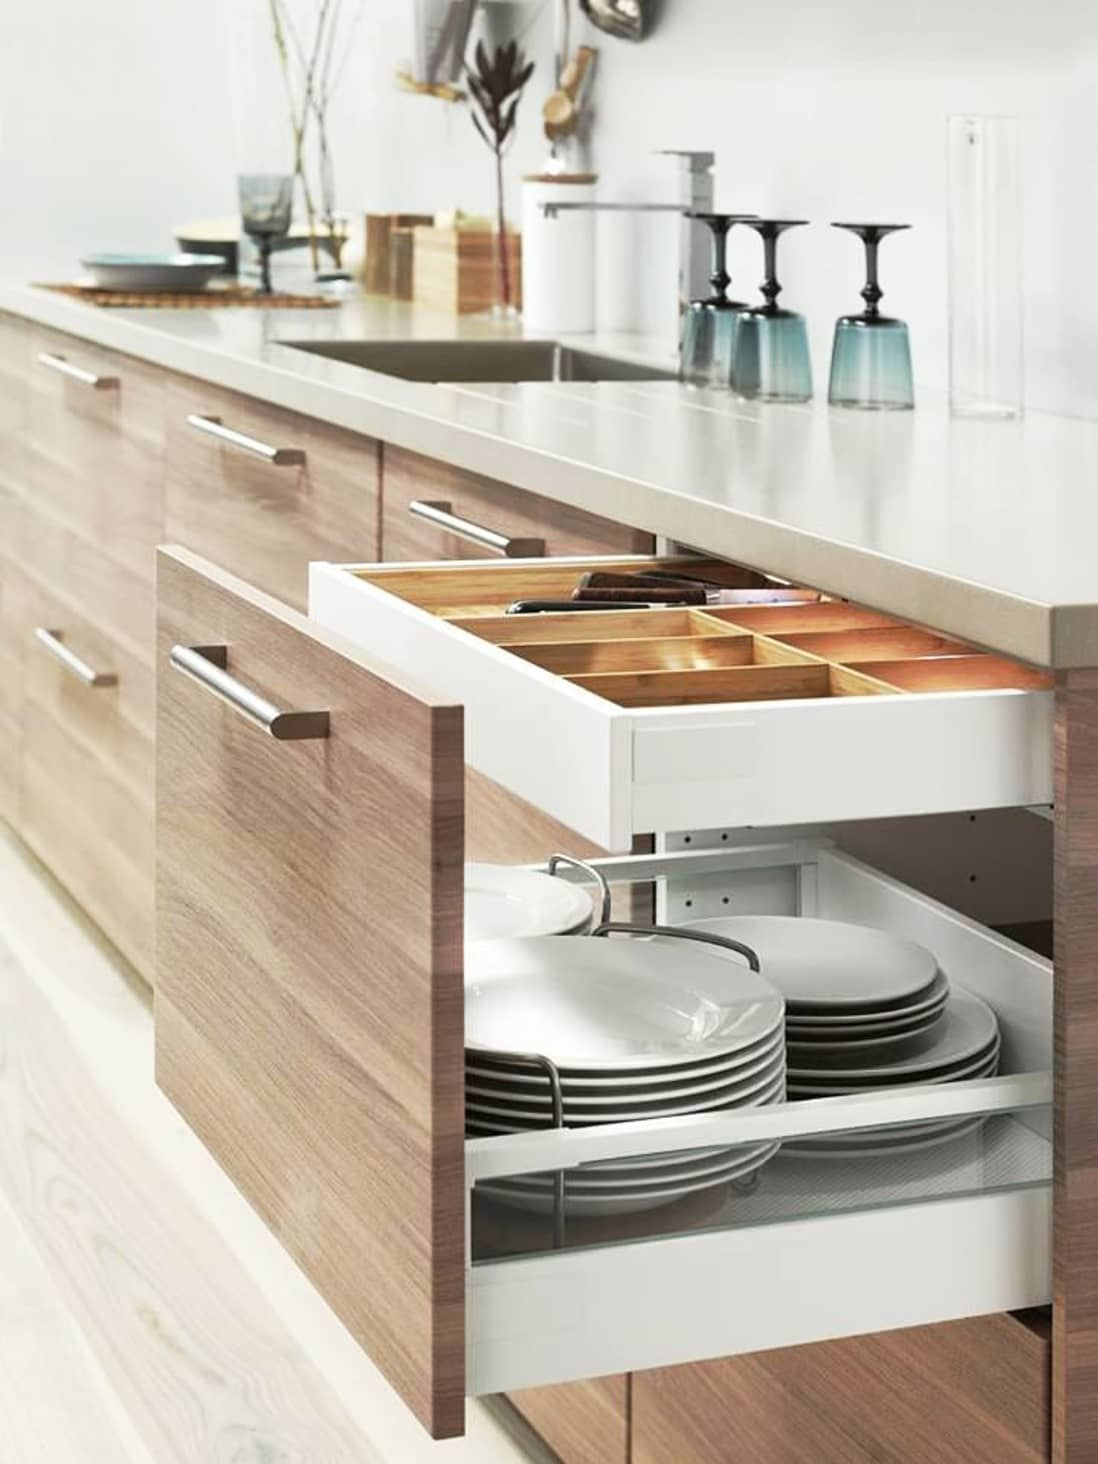 IKEA Is Totally Changing Their Kitchen Cabinet System. Here's What We Know About SEKTION.